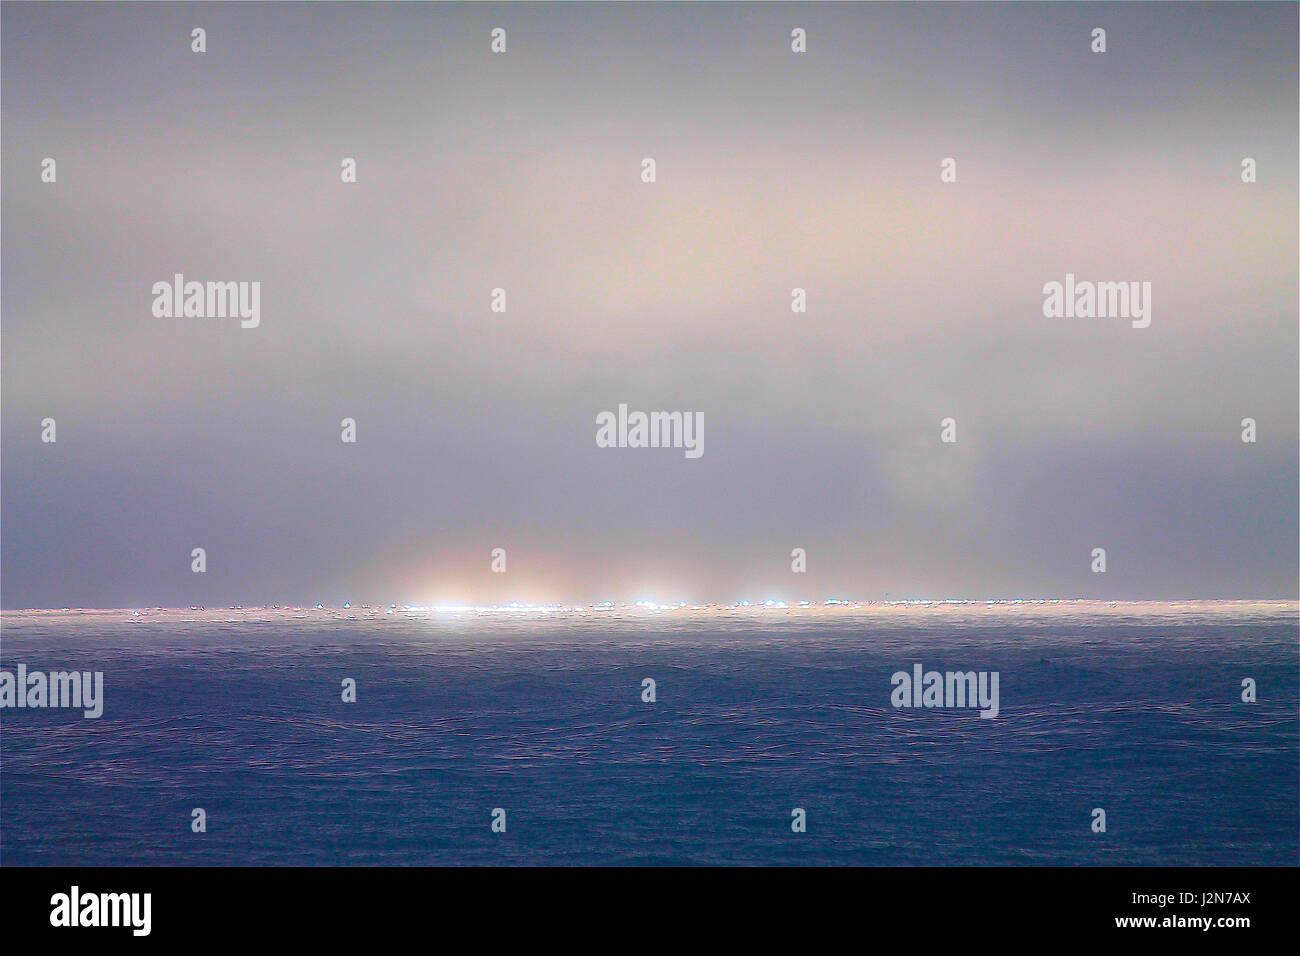 Overcast Skies at Sea during Sunset - Stock Image